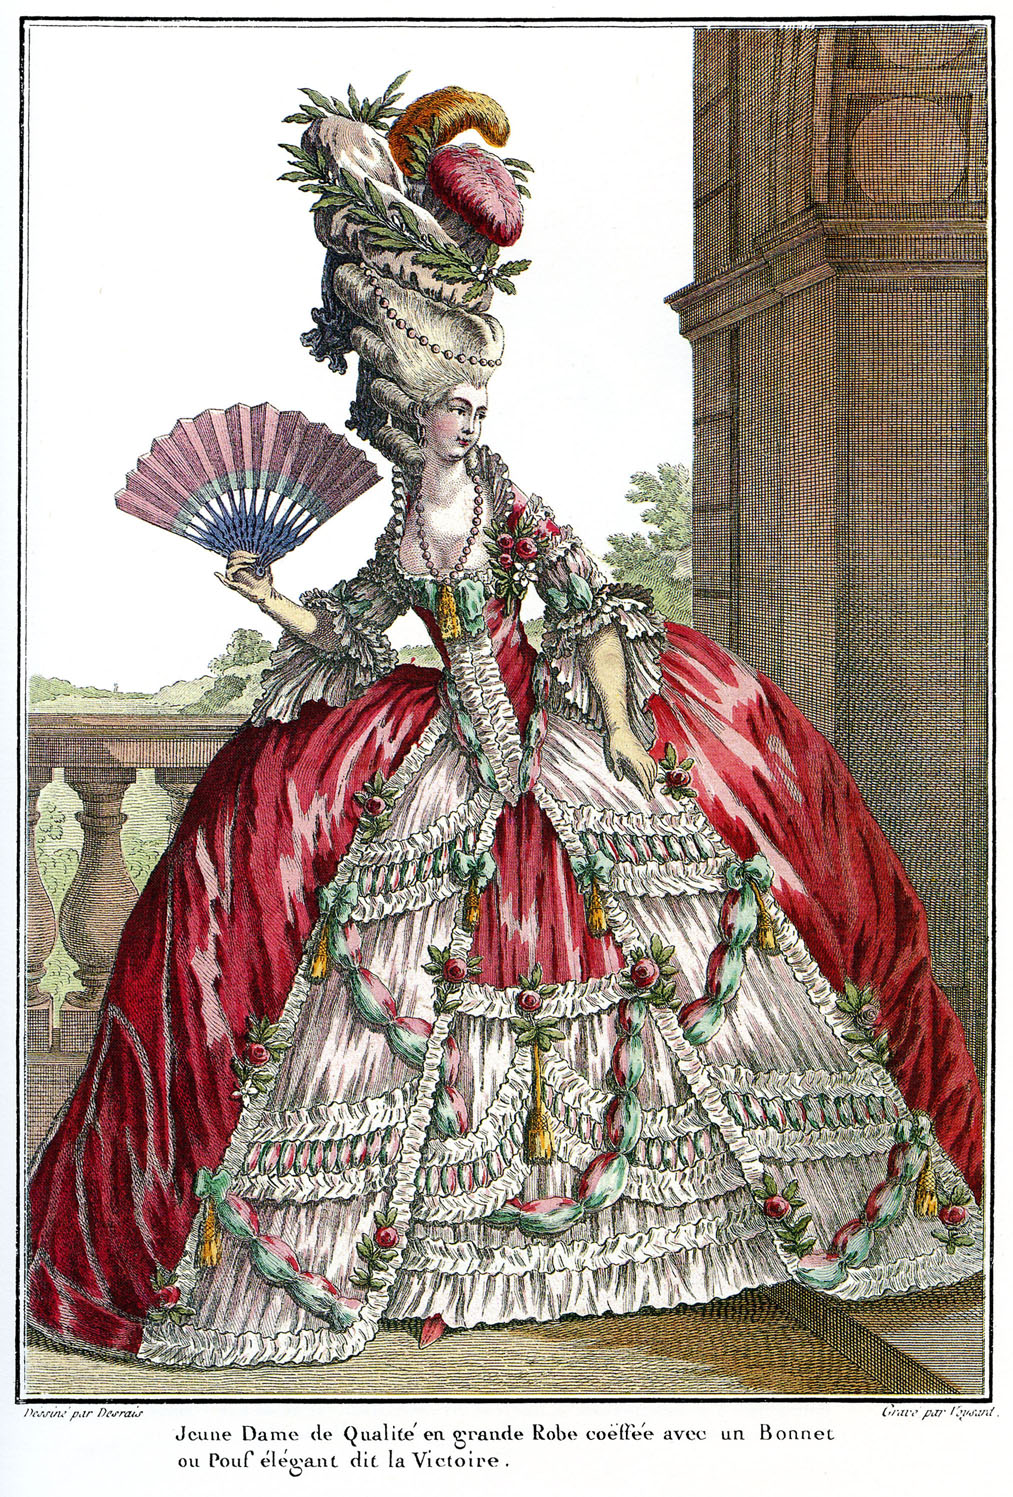 1778 fashion plate from Galerie des Modes depicting a grander style of dress and a tall pouf with laurel leaves symbolizing a victory.